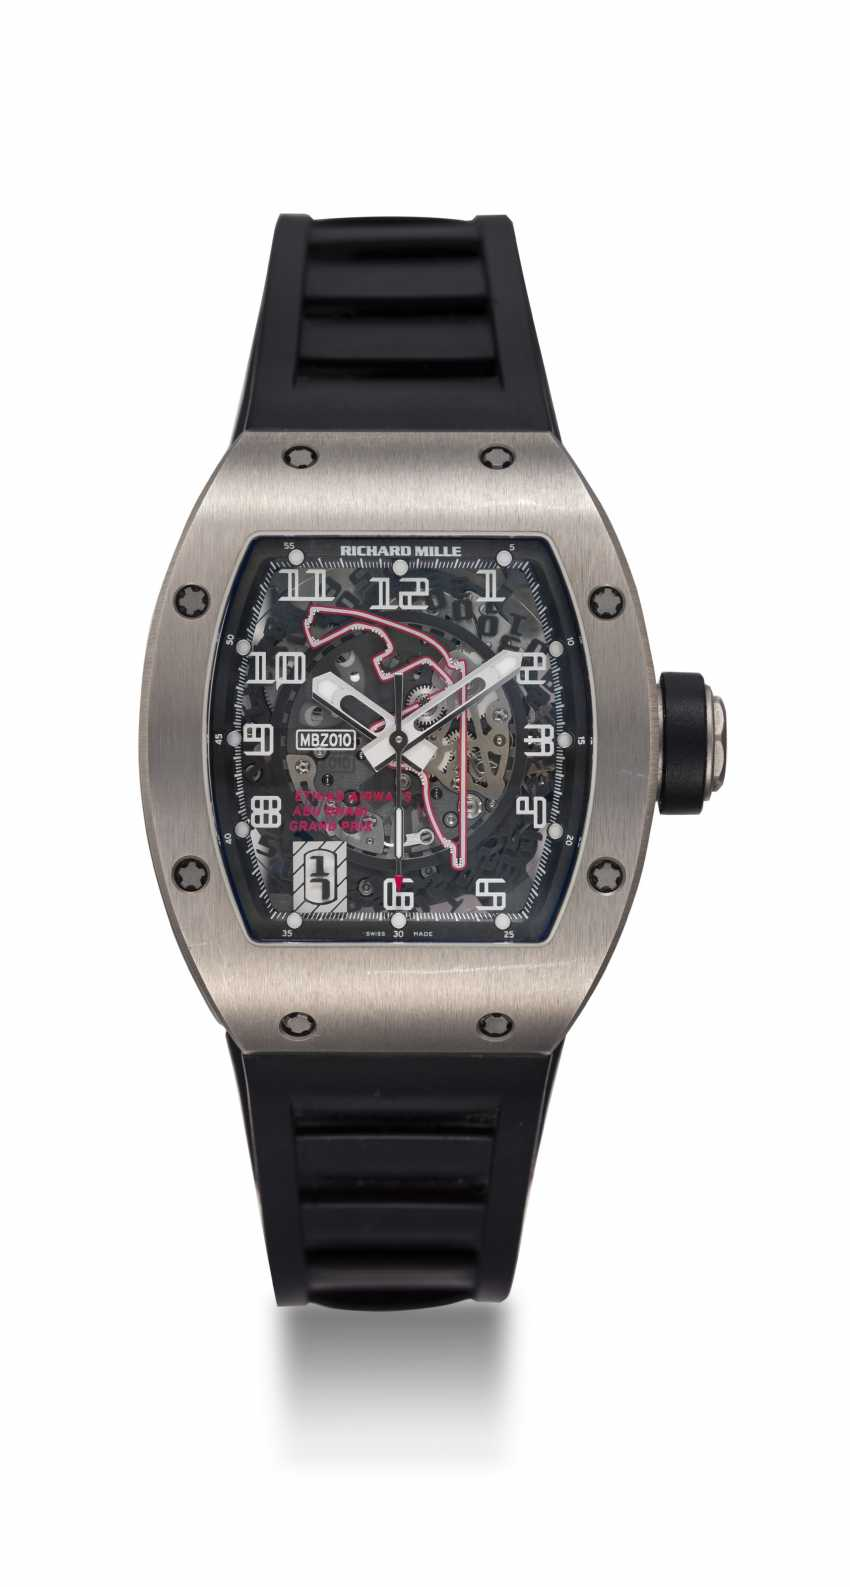 RICHARD MILLE, A TITANIUM RM010 TO MARK 1st ABU DHABI F1 GRAND PRIX, MBZ LIMITED EDITION 081/200 - photo 3